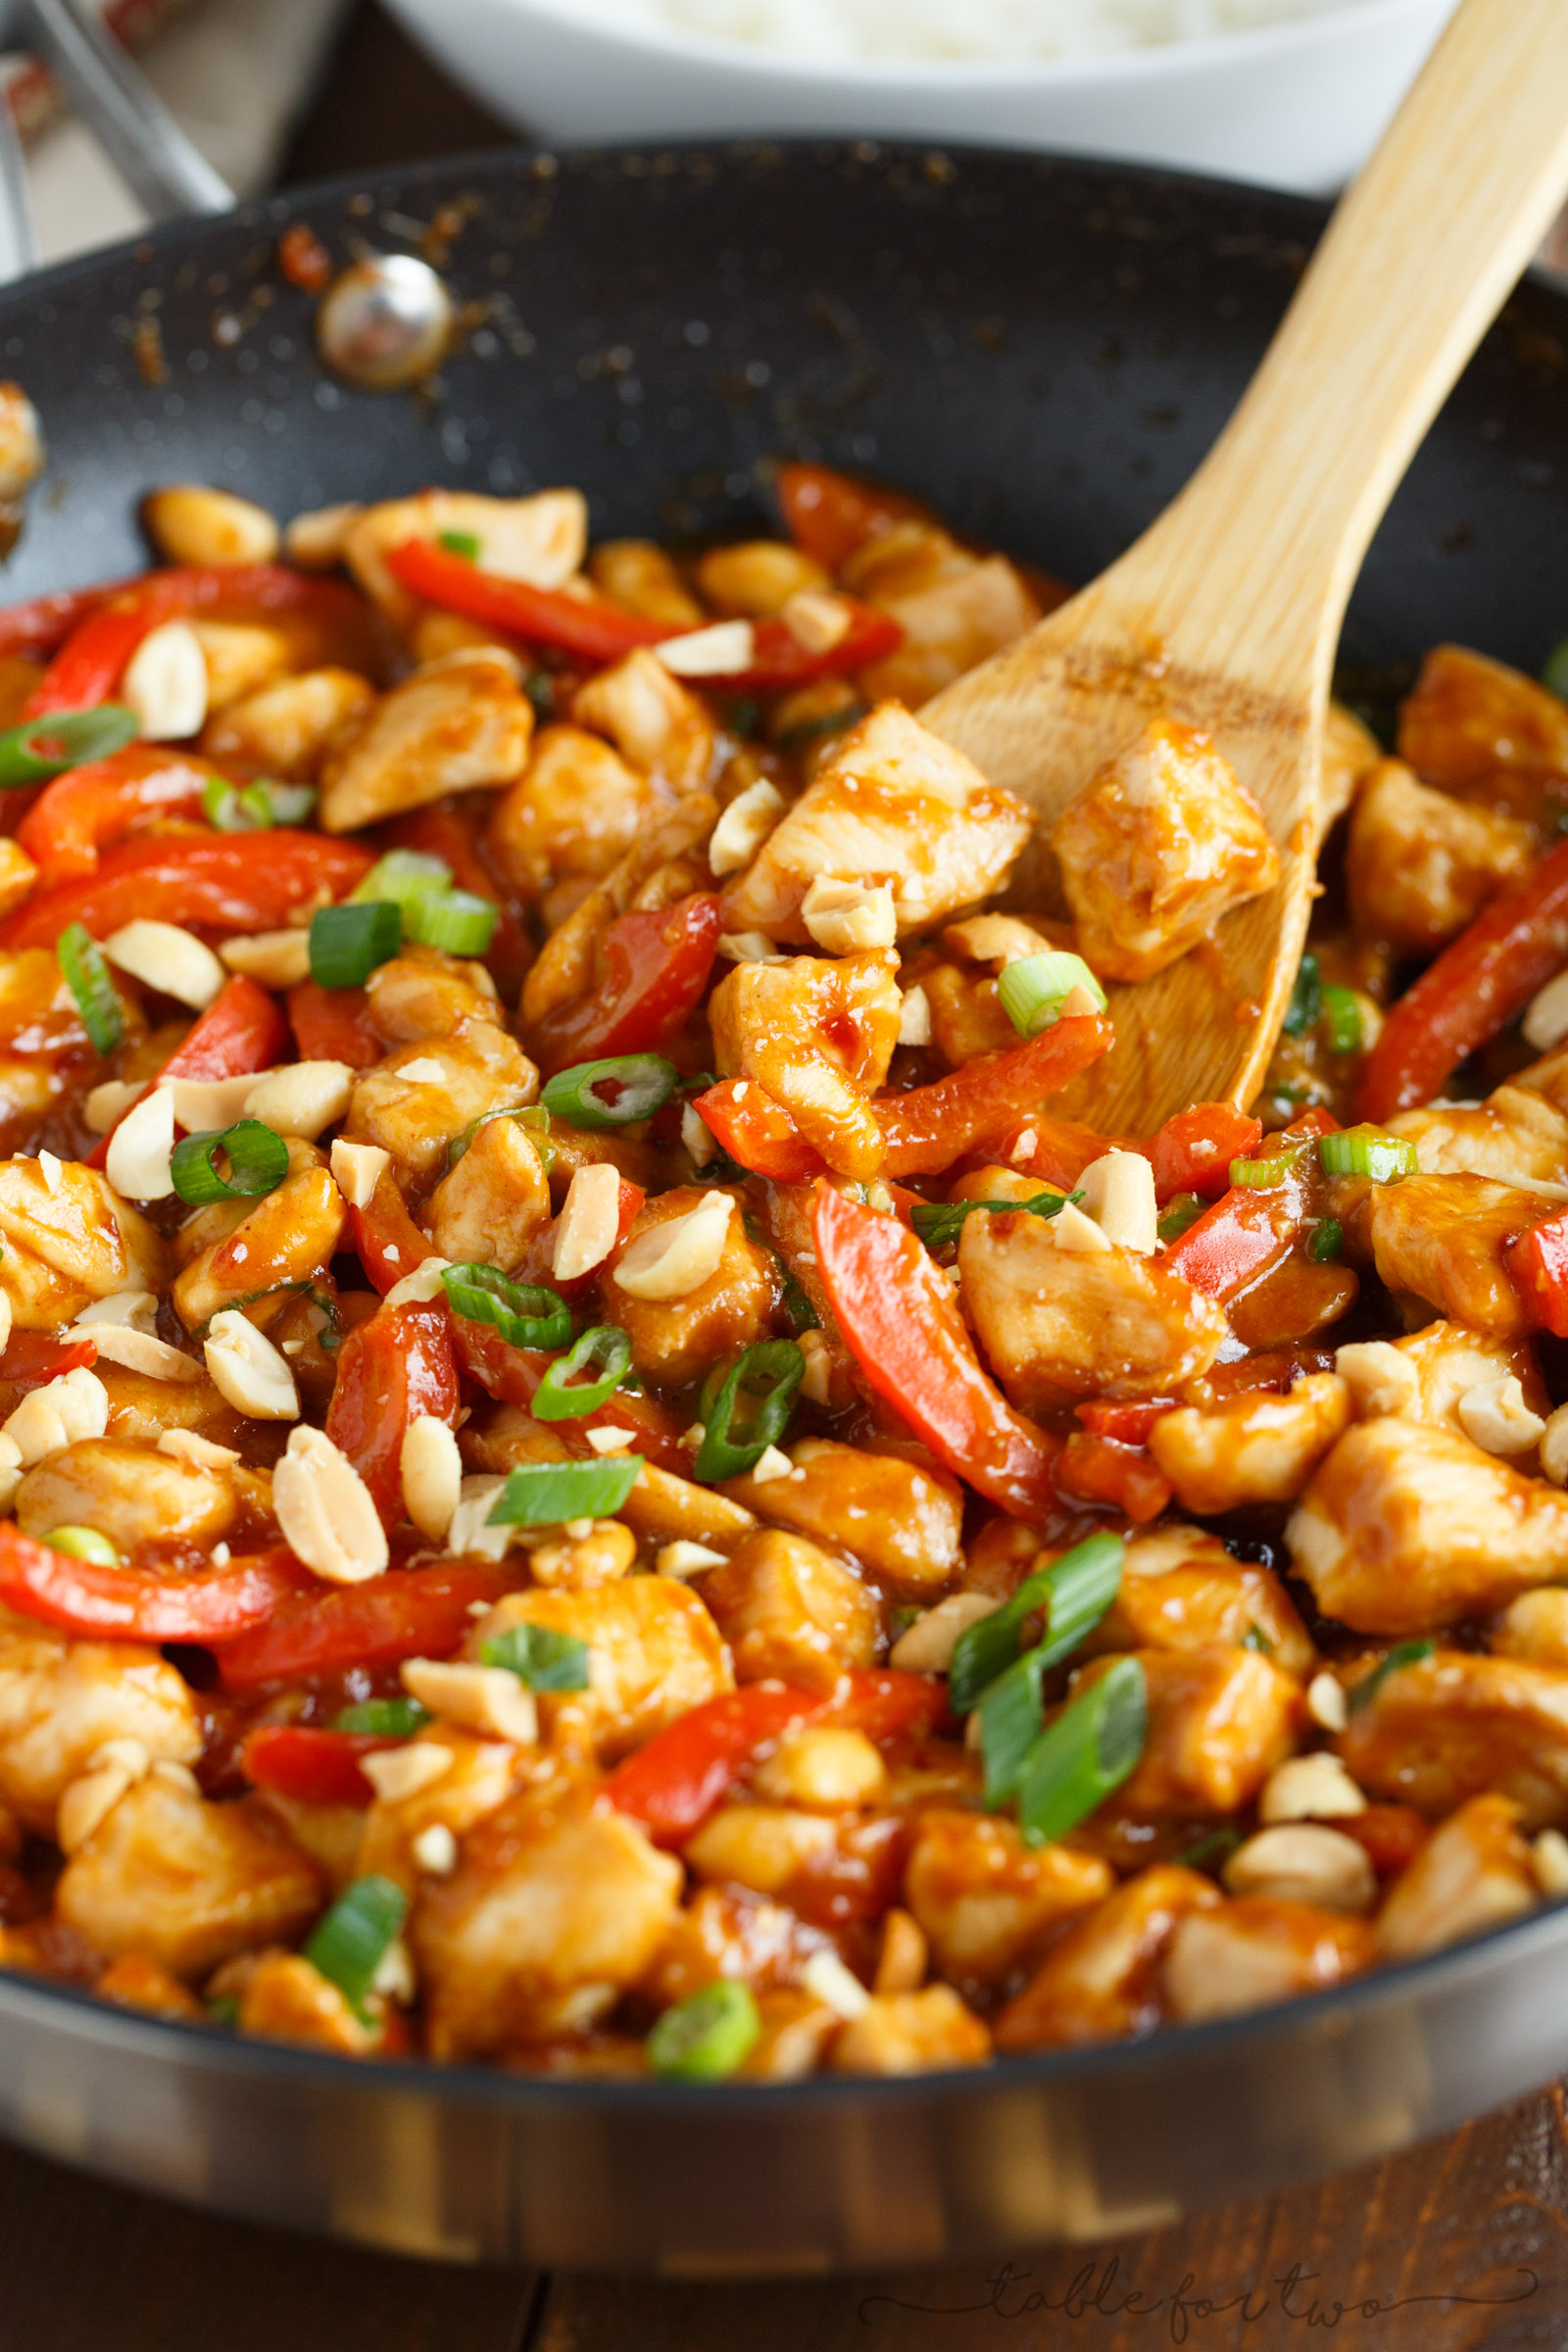 Spicy Peanut Chicken Quick And Easy Chicken Dinner With